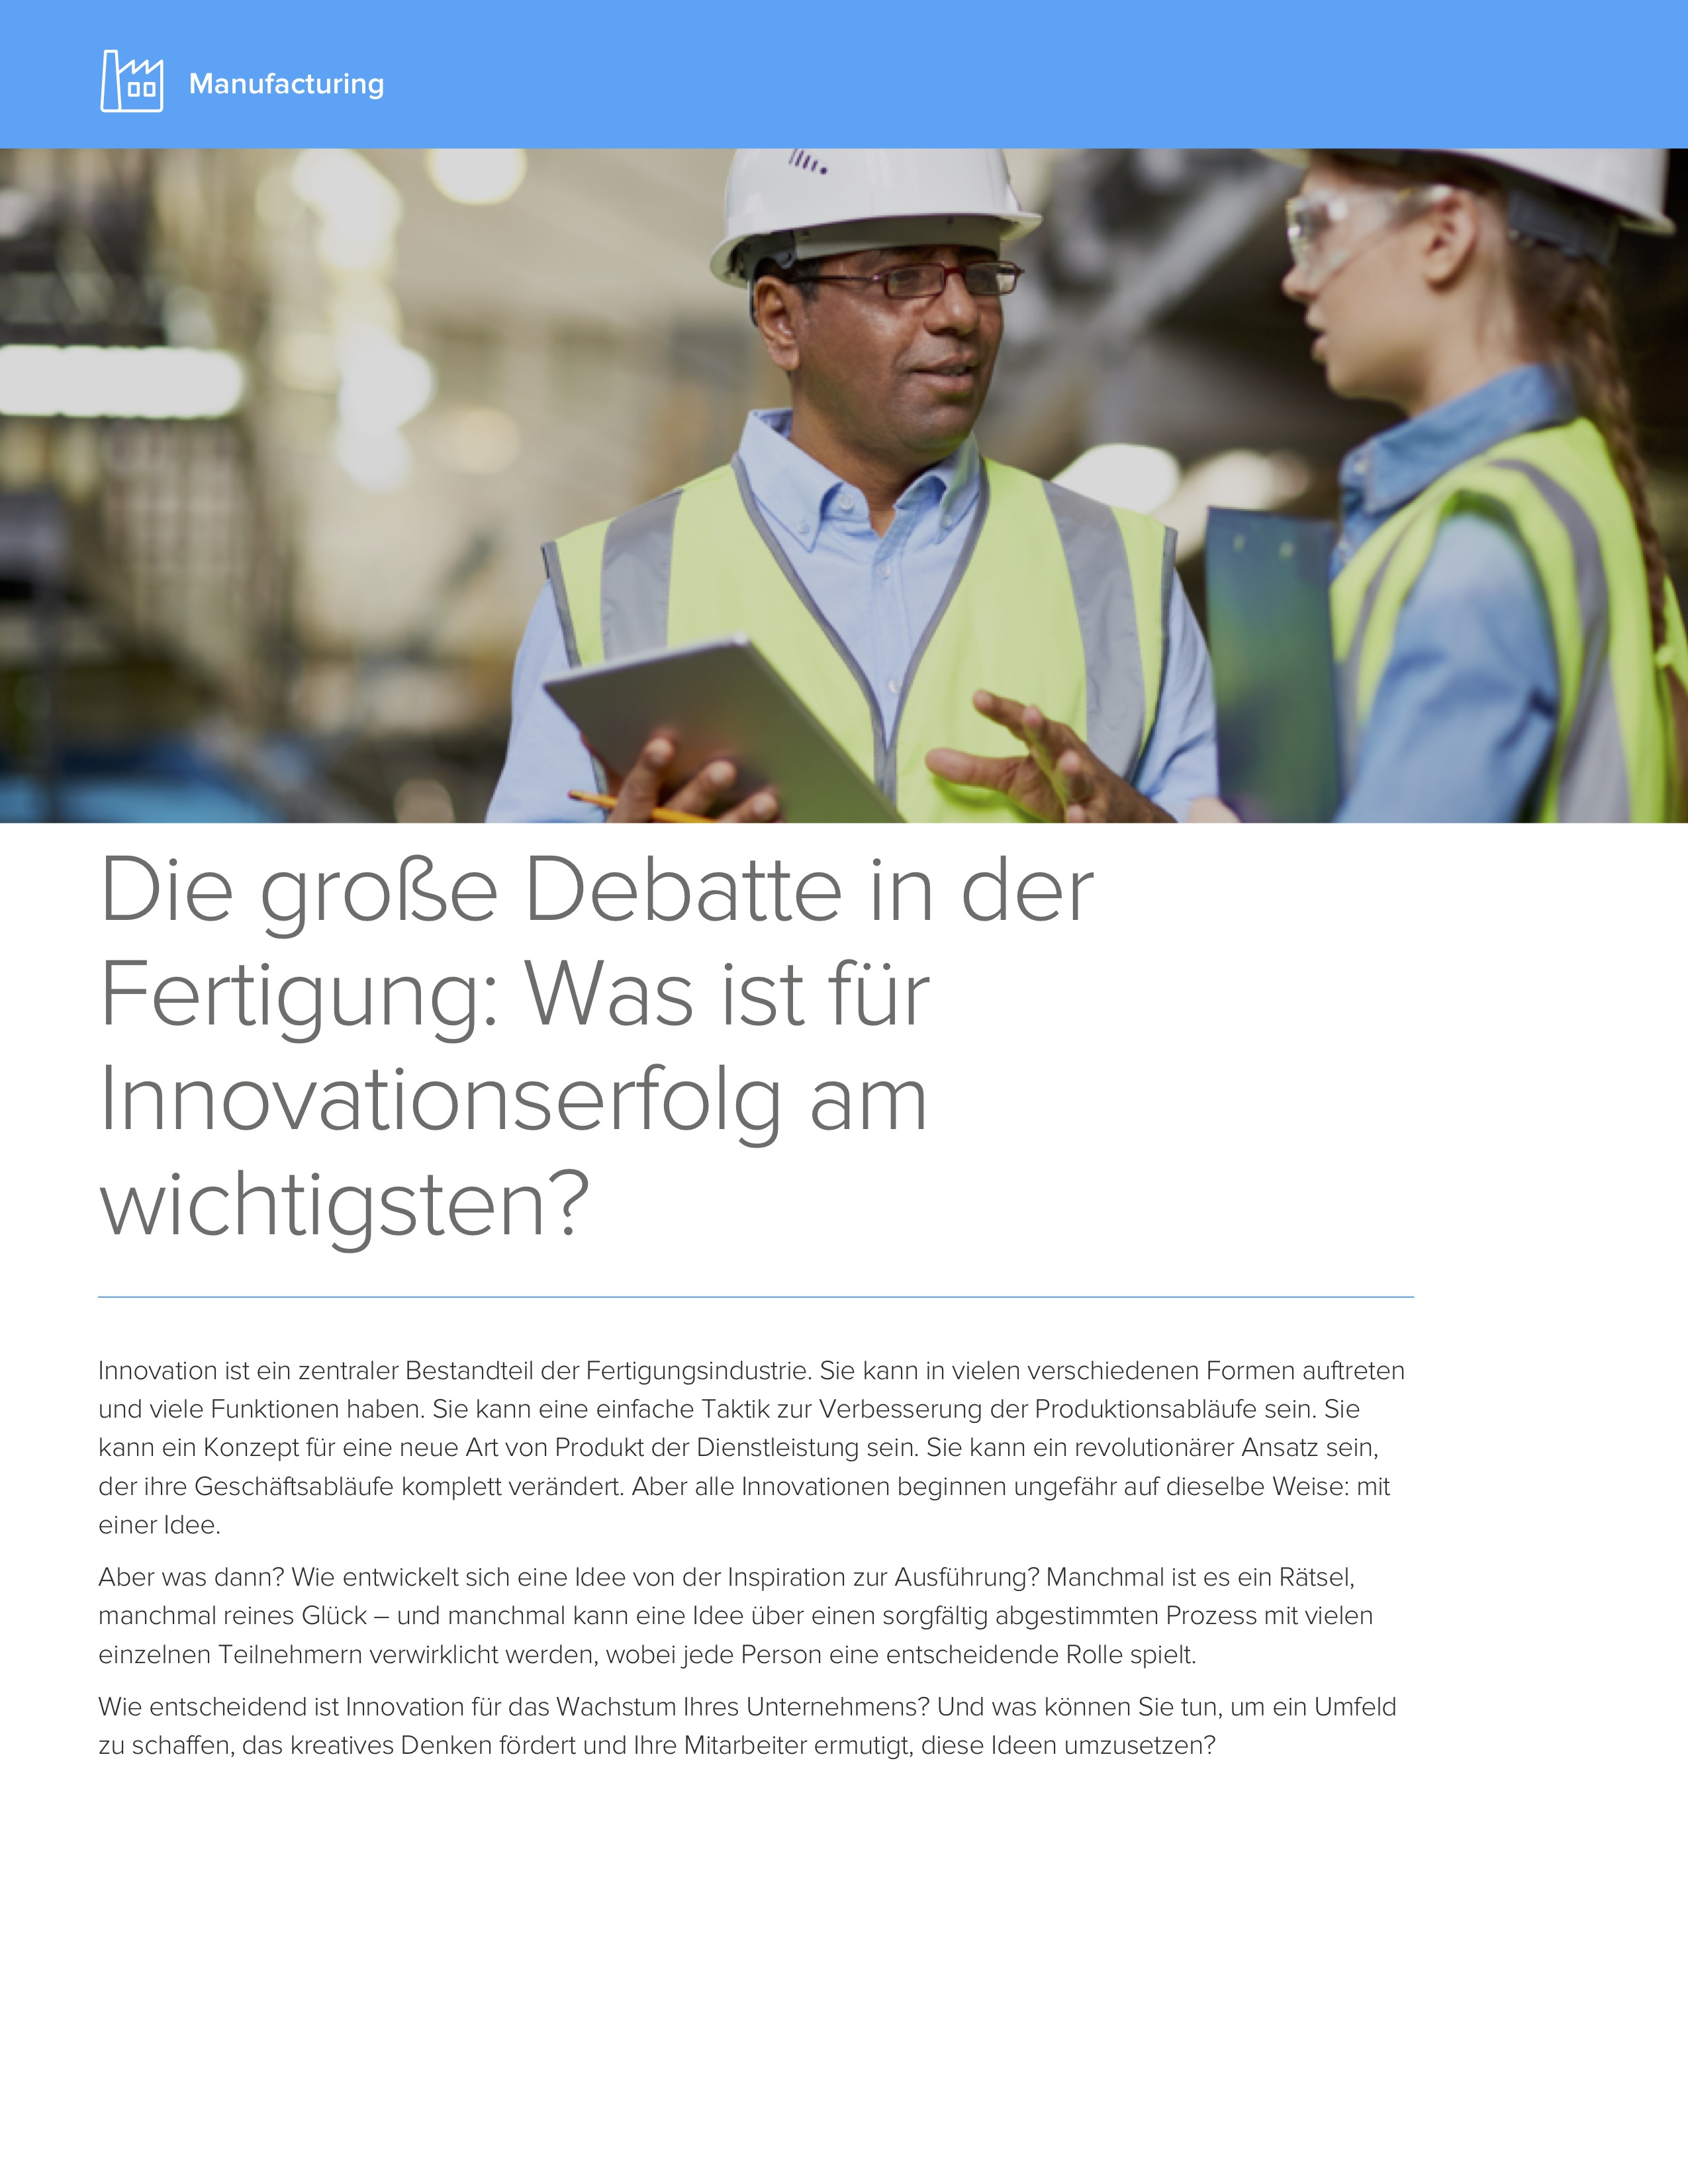 Manufacturing was ist fur innov ationserfolg am wichtigstencover